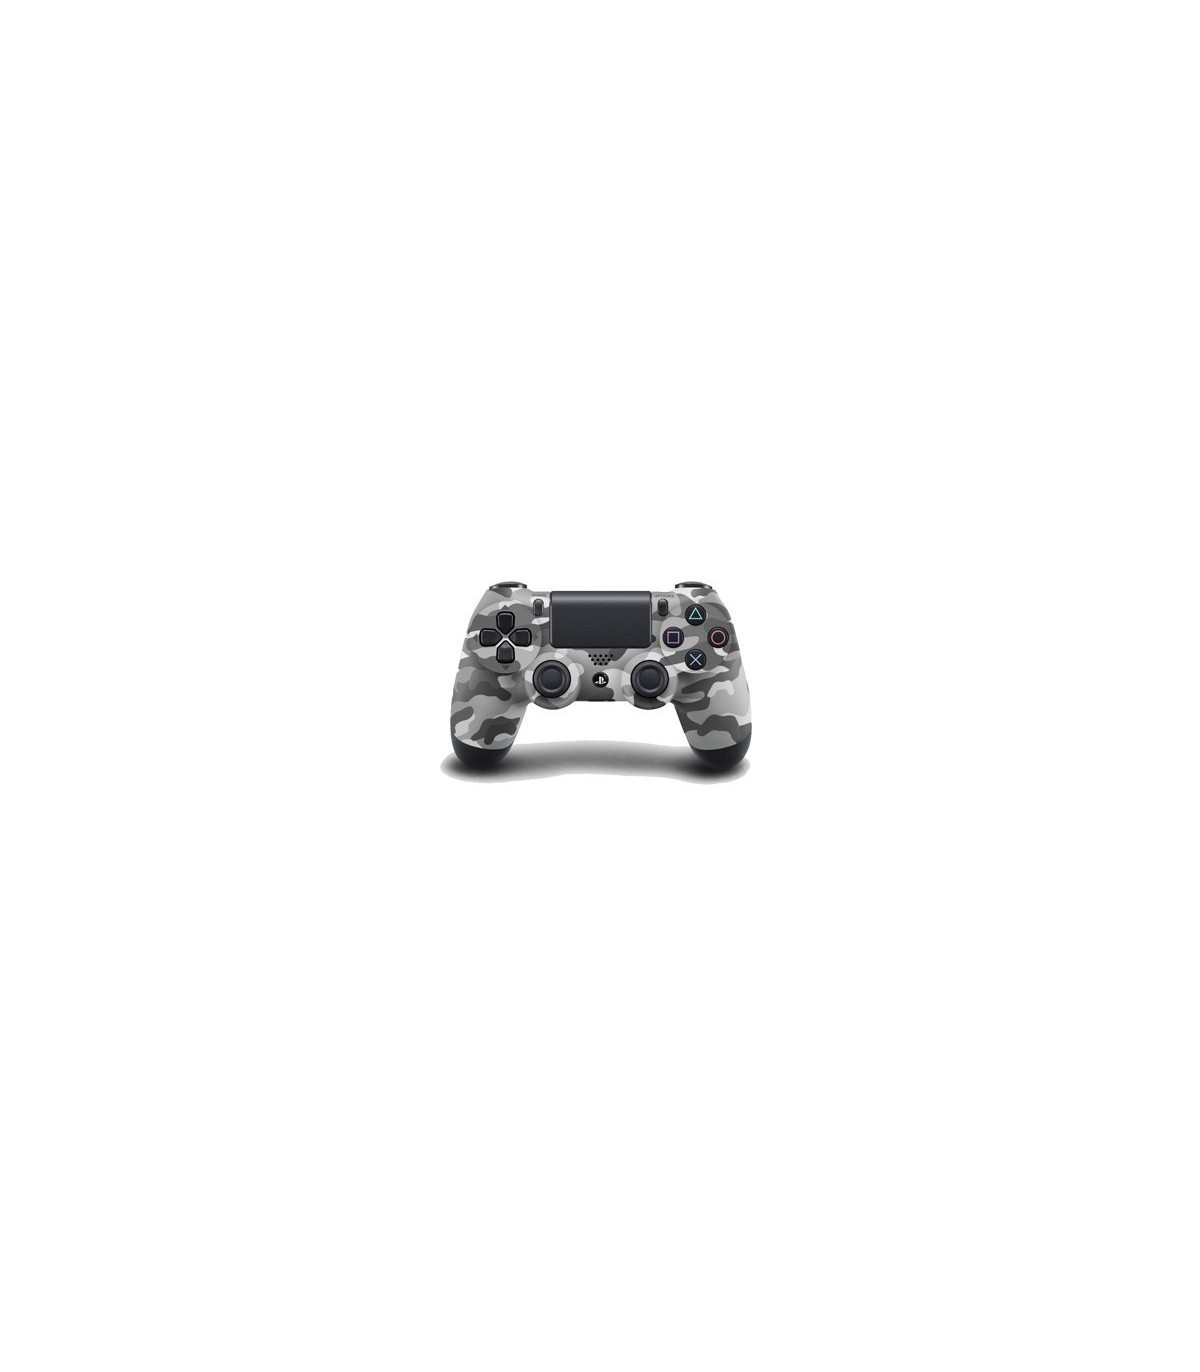 Sony DualShock 4 Crystal Wireless Controller